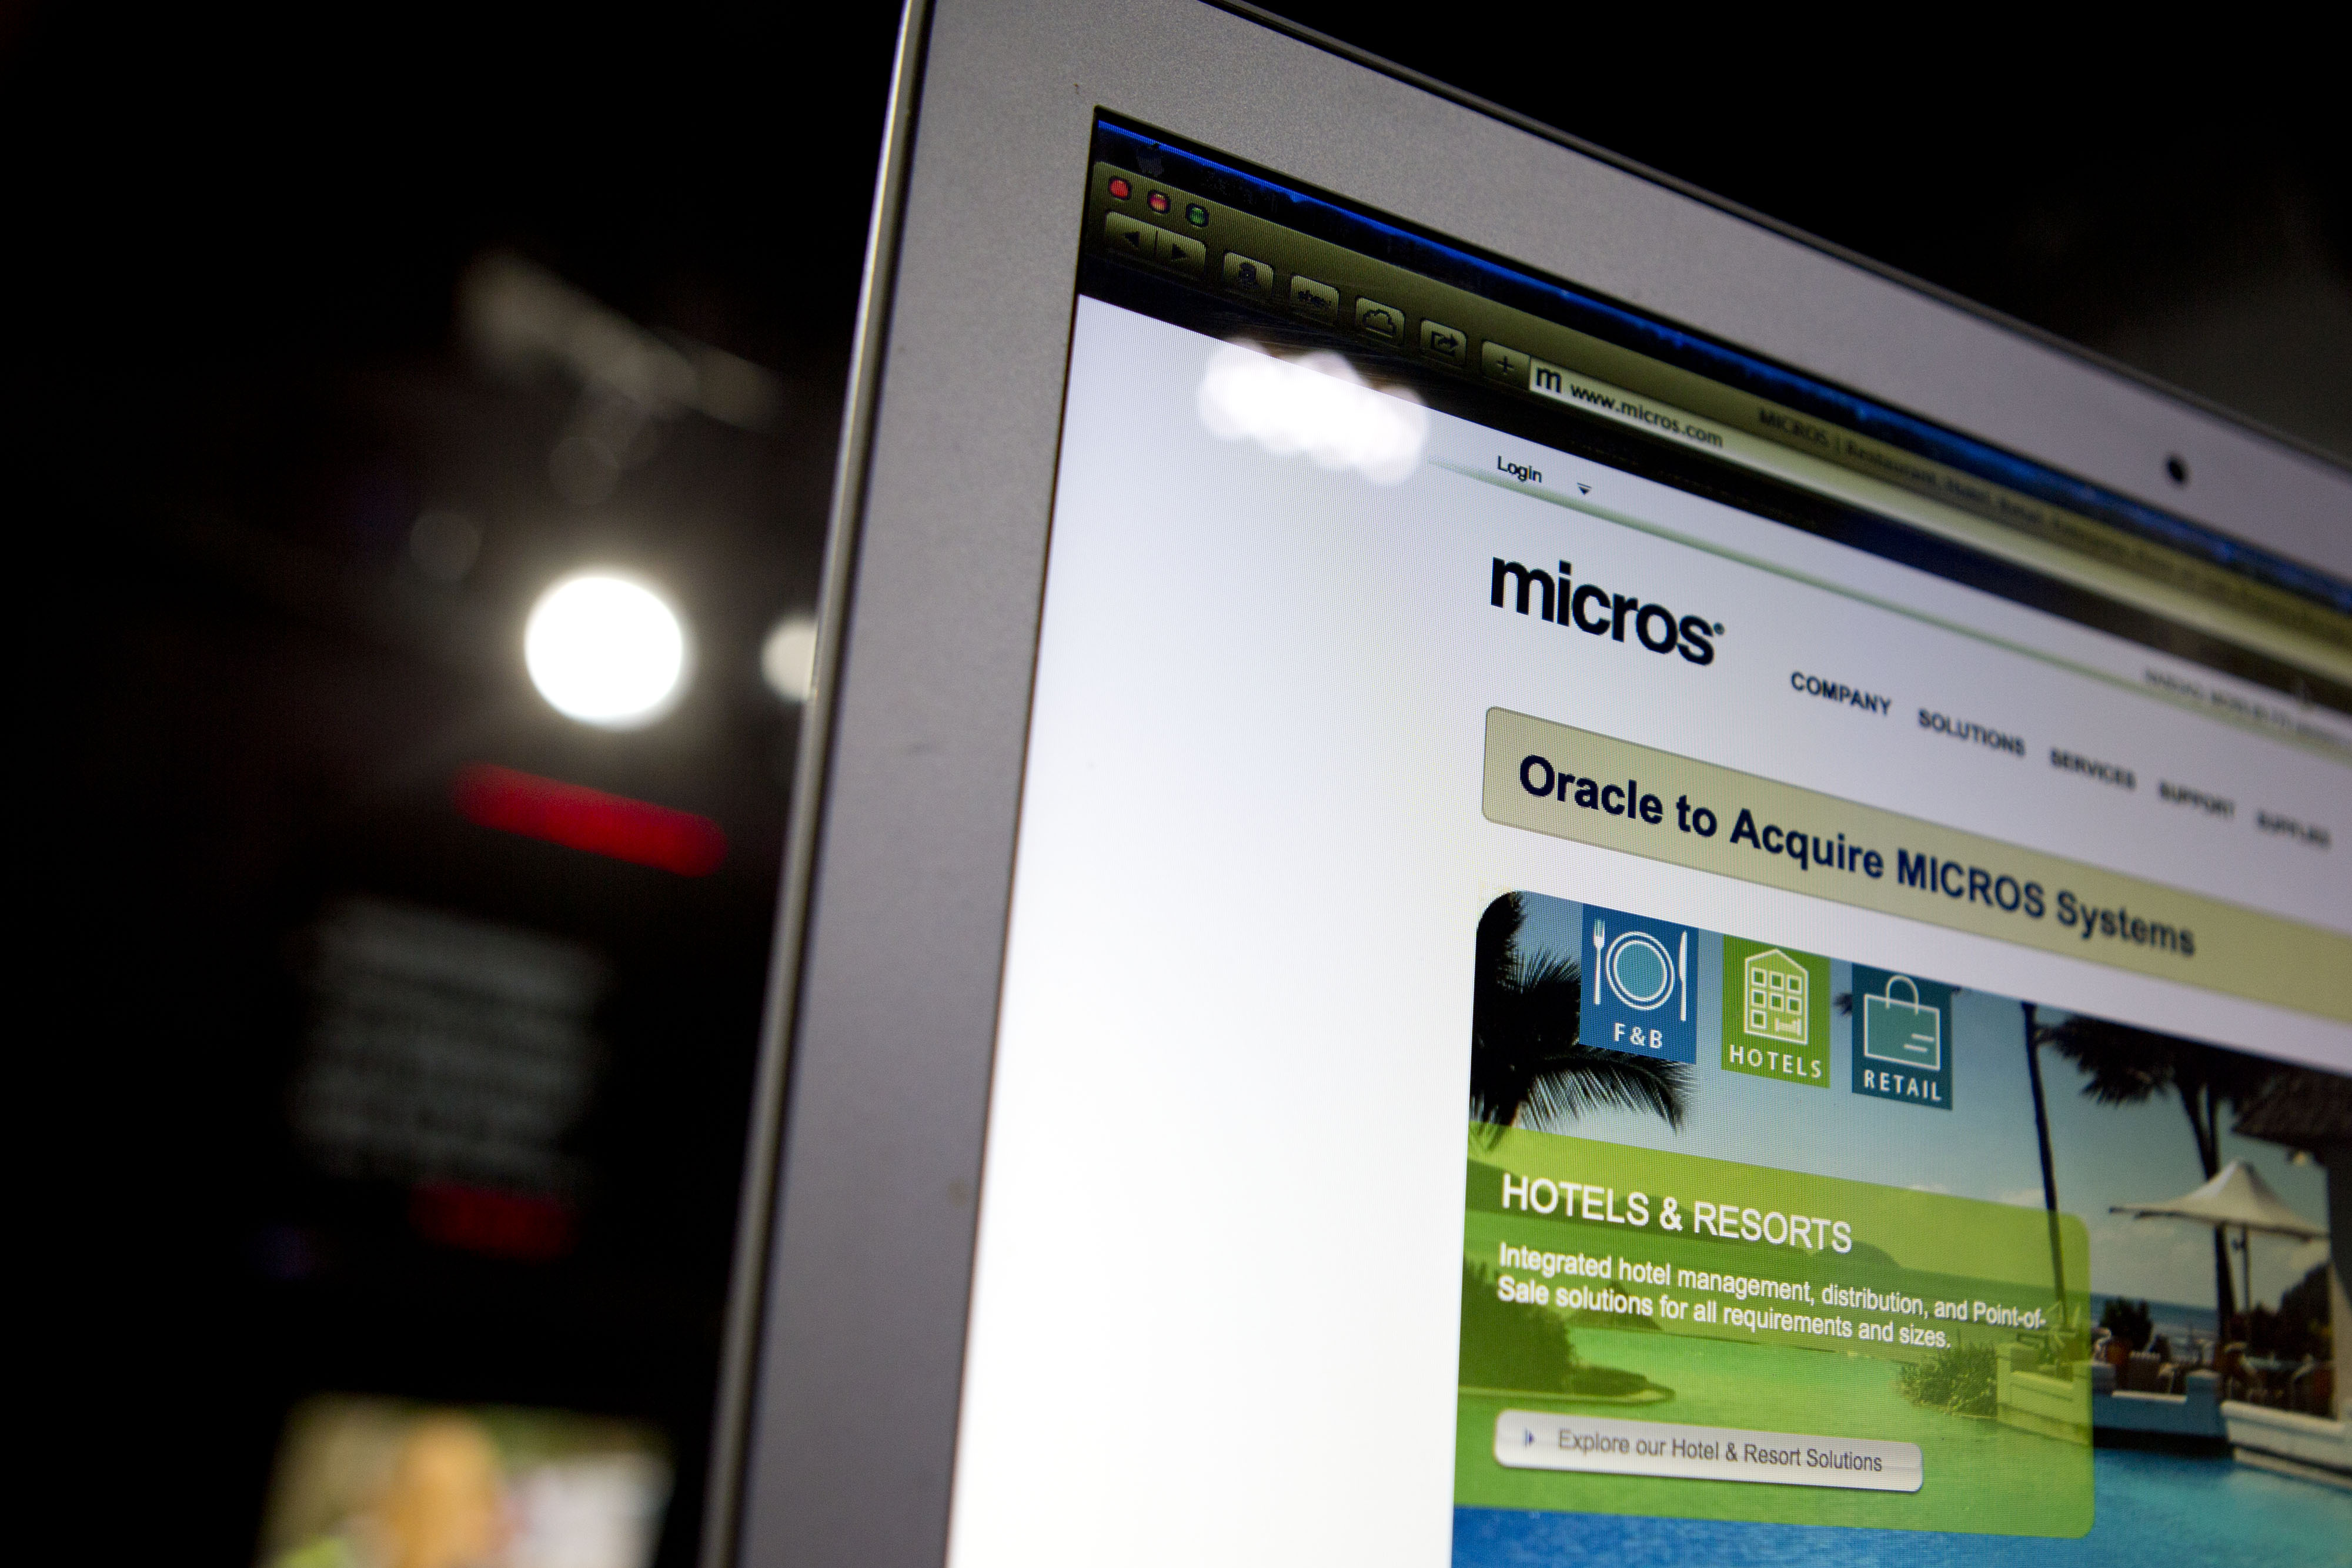 The Micros Systems website.